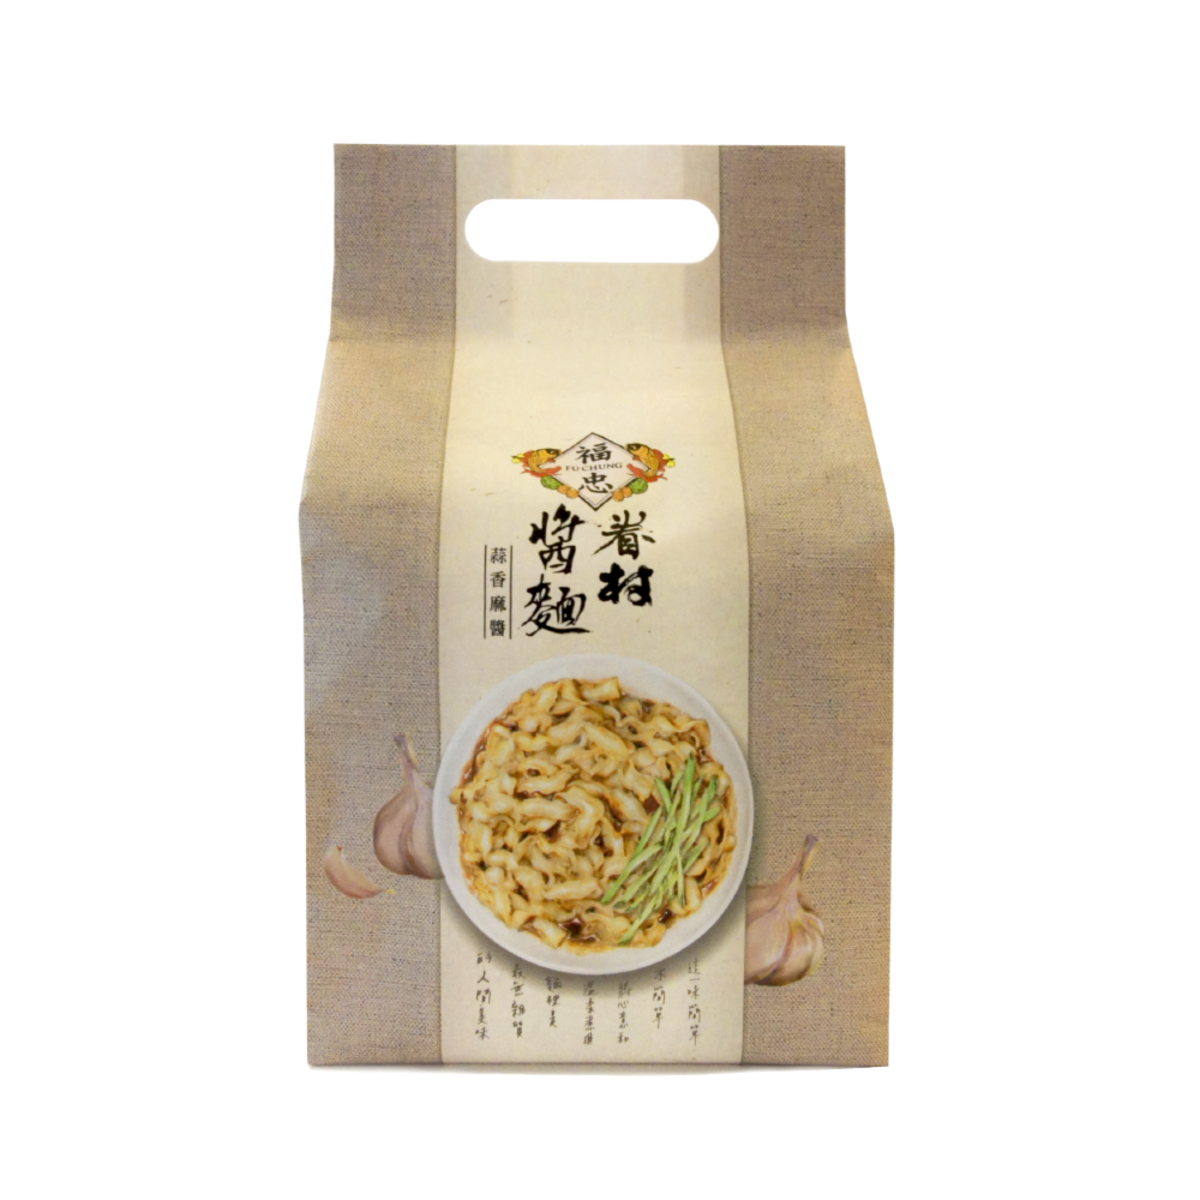 Village dry noodles with sauce - Garlic and Sesame